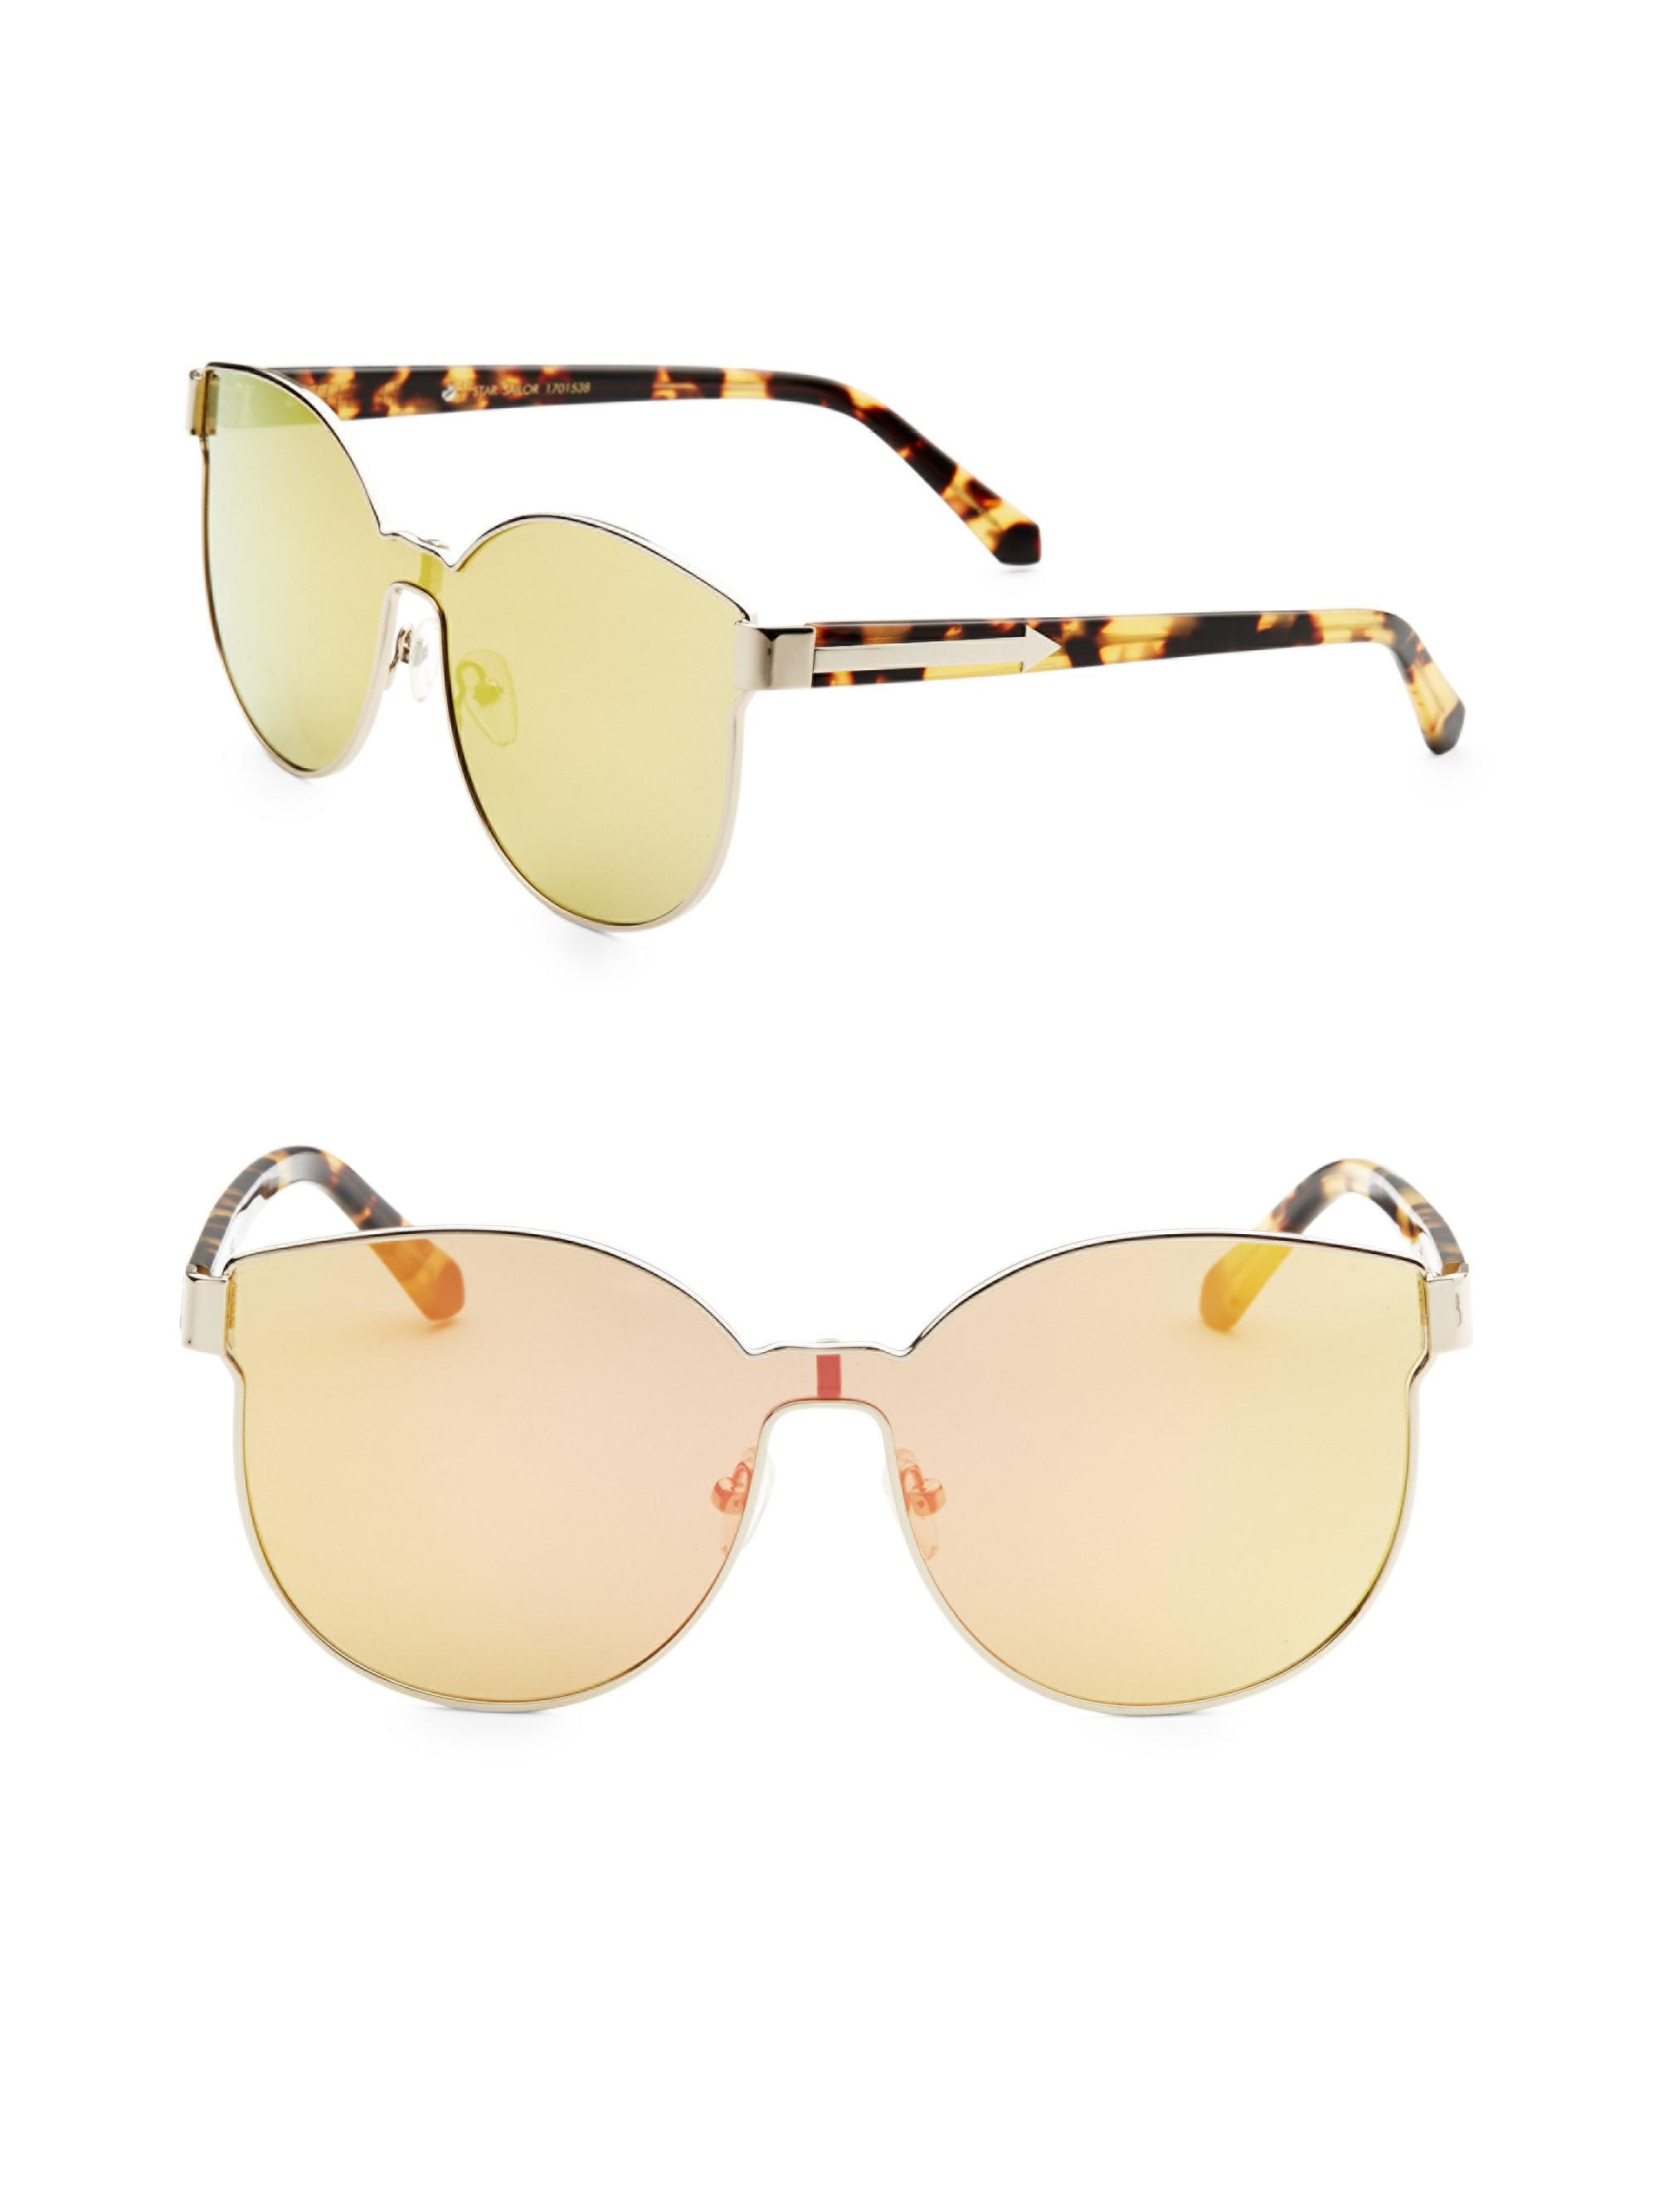 Star Sailor Round-frame Gold-tone And Acetate Mirrored Sunglasses - Yellow Karen Walker